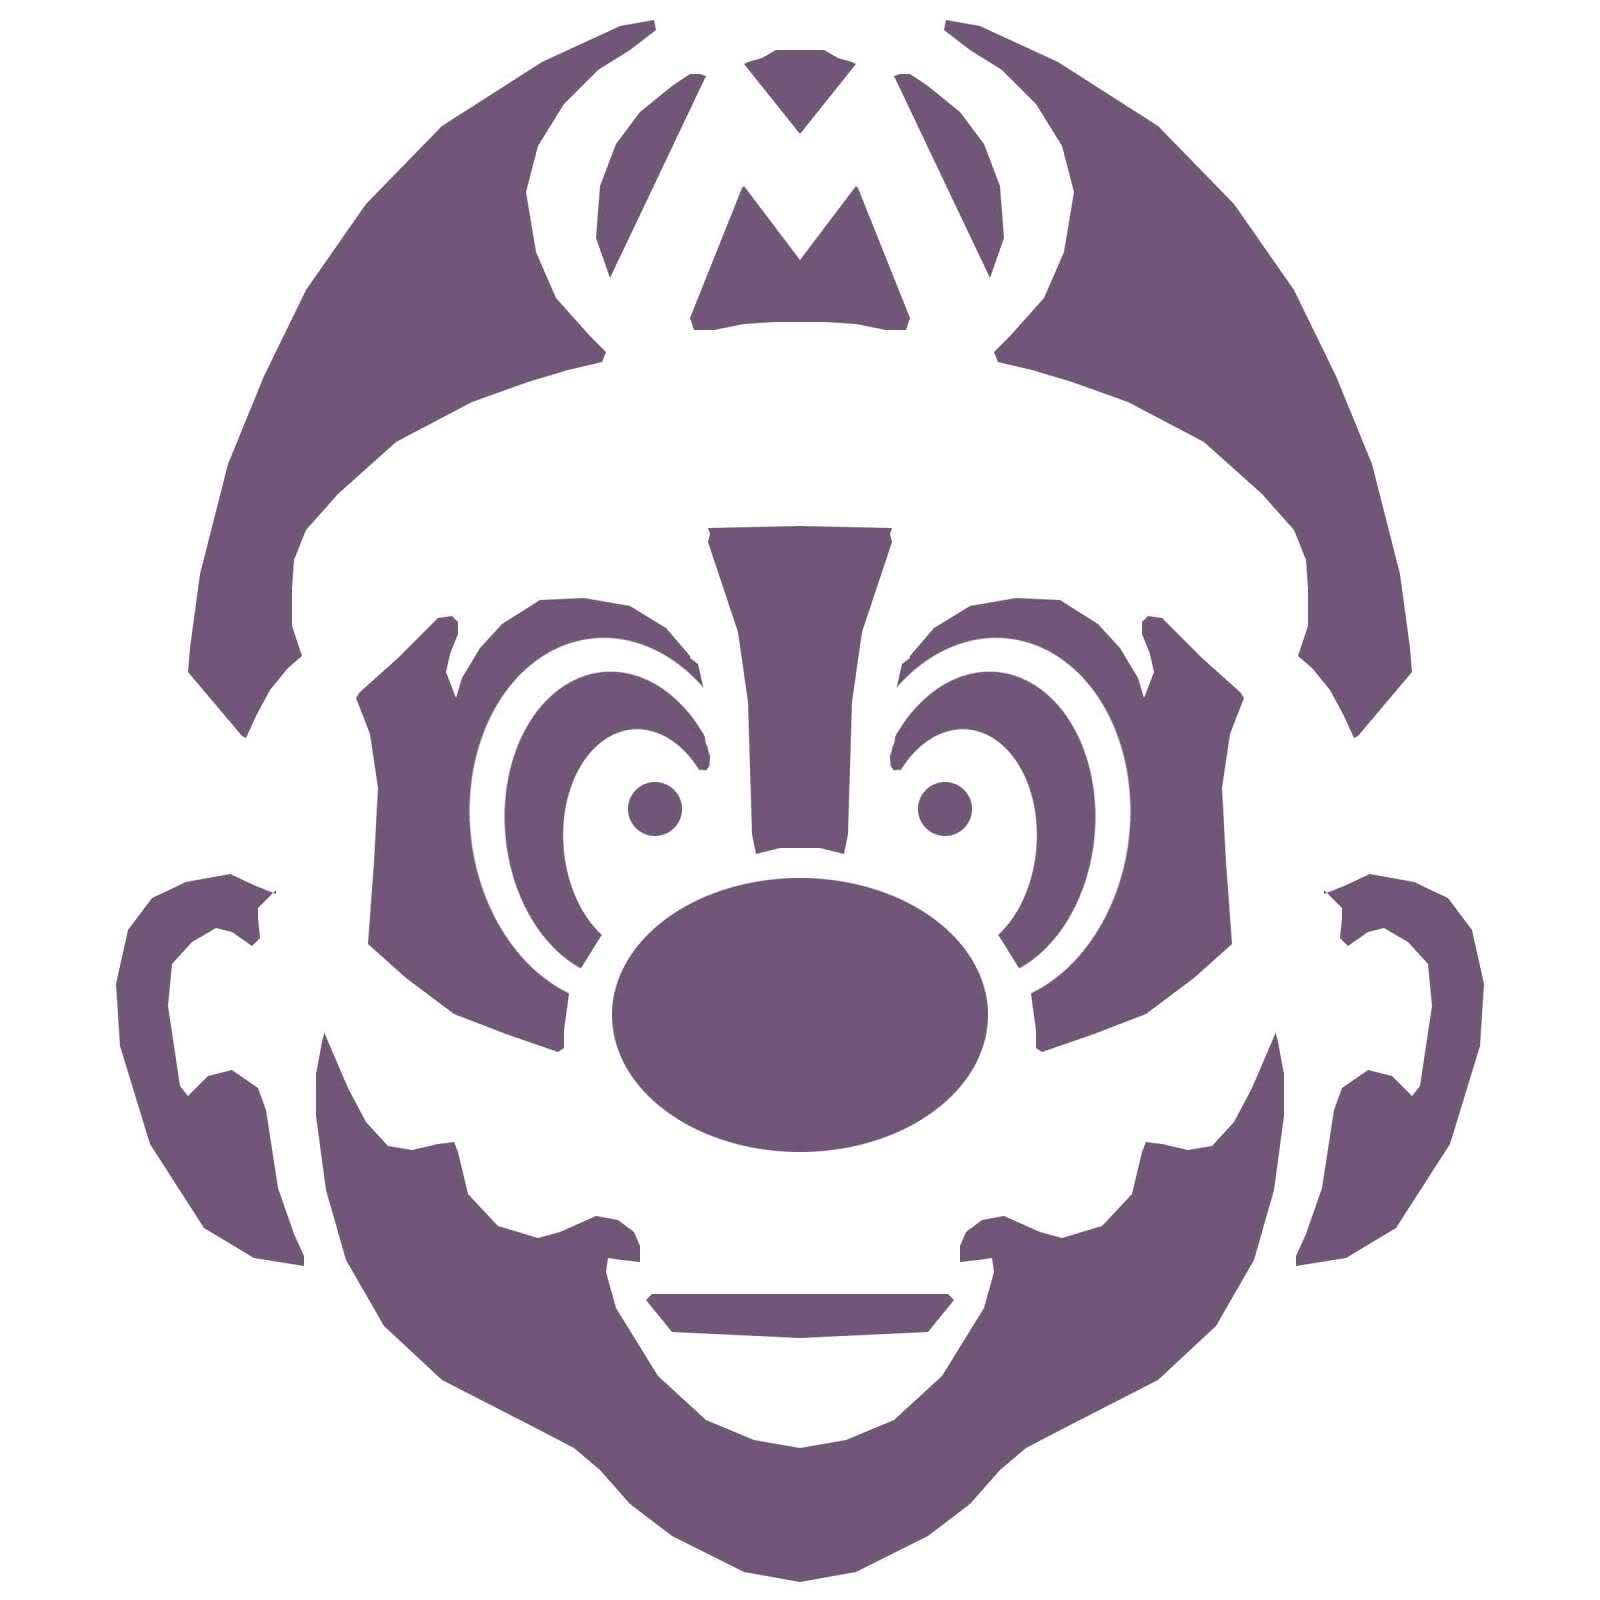 The Stencil Over At Mario Mayhem